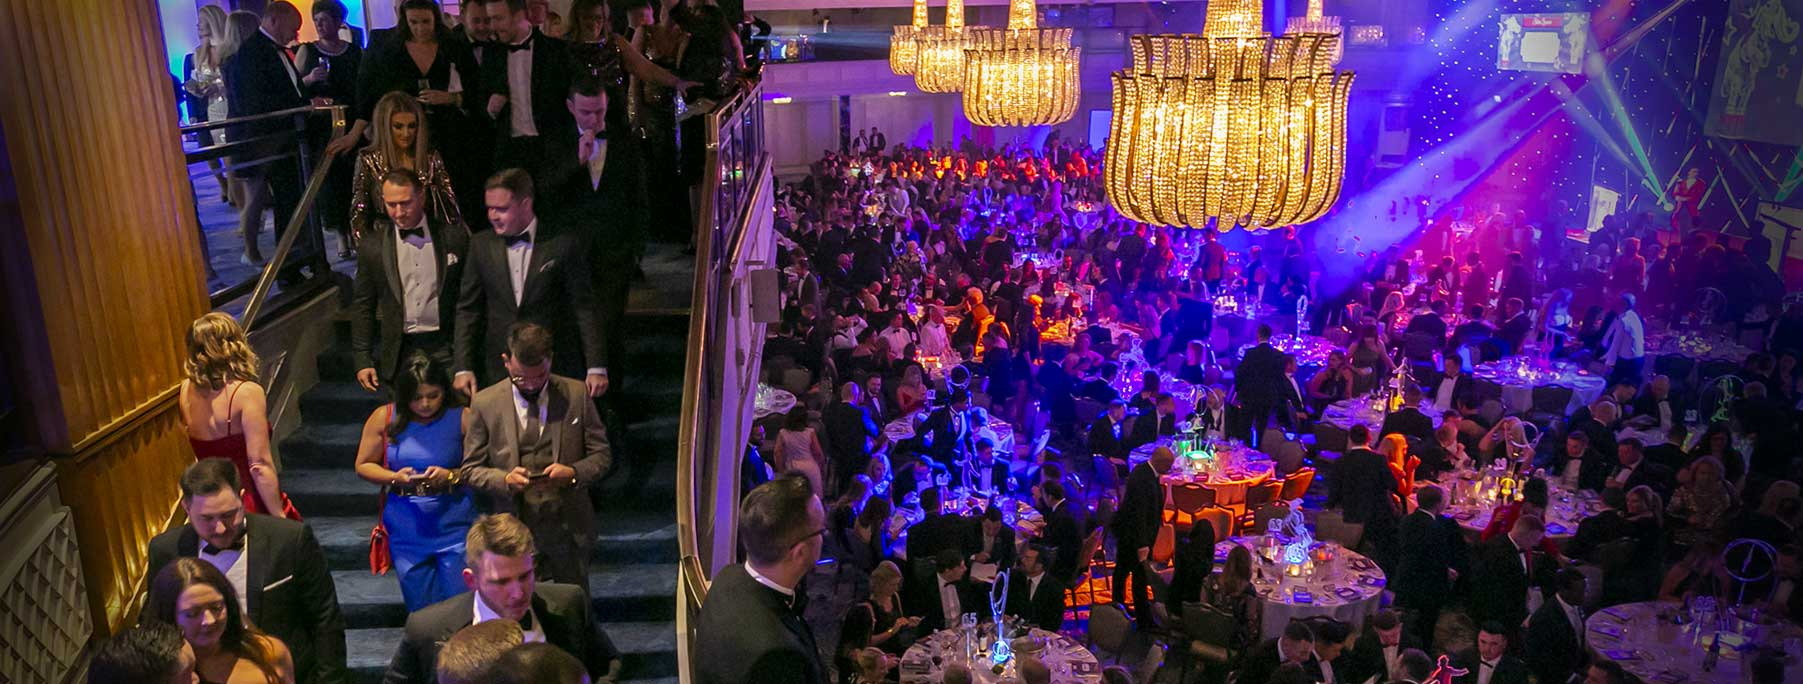 The Negotiator Awards National Estate and Letting Agent Awards Property Party Of The Year 2019 image